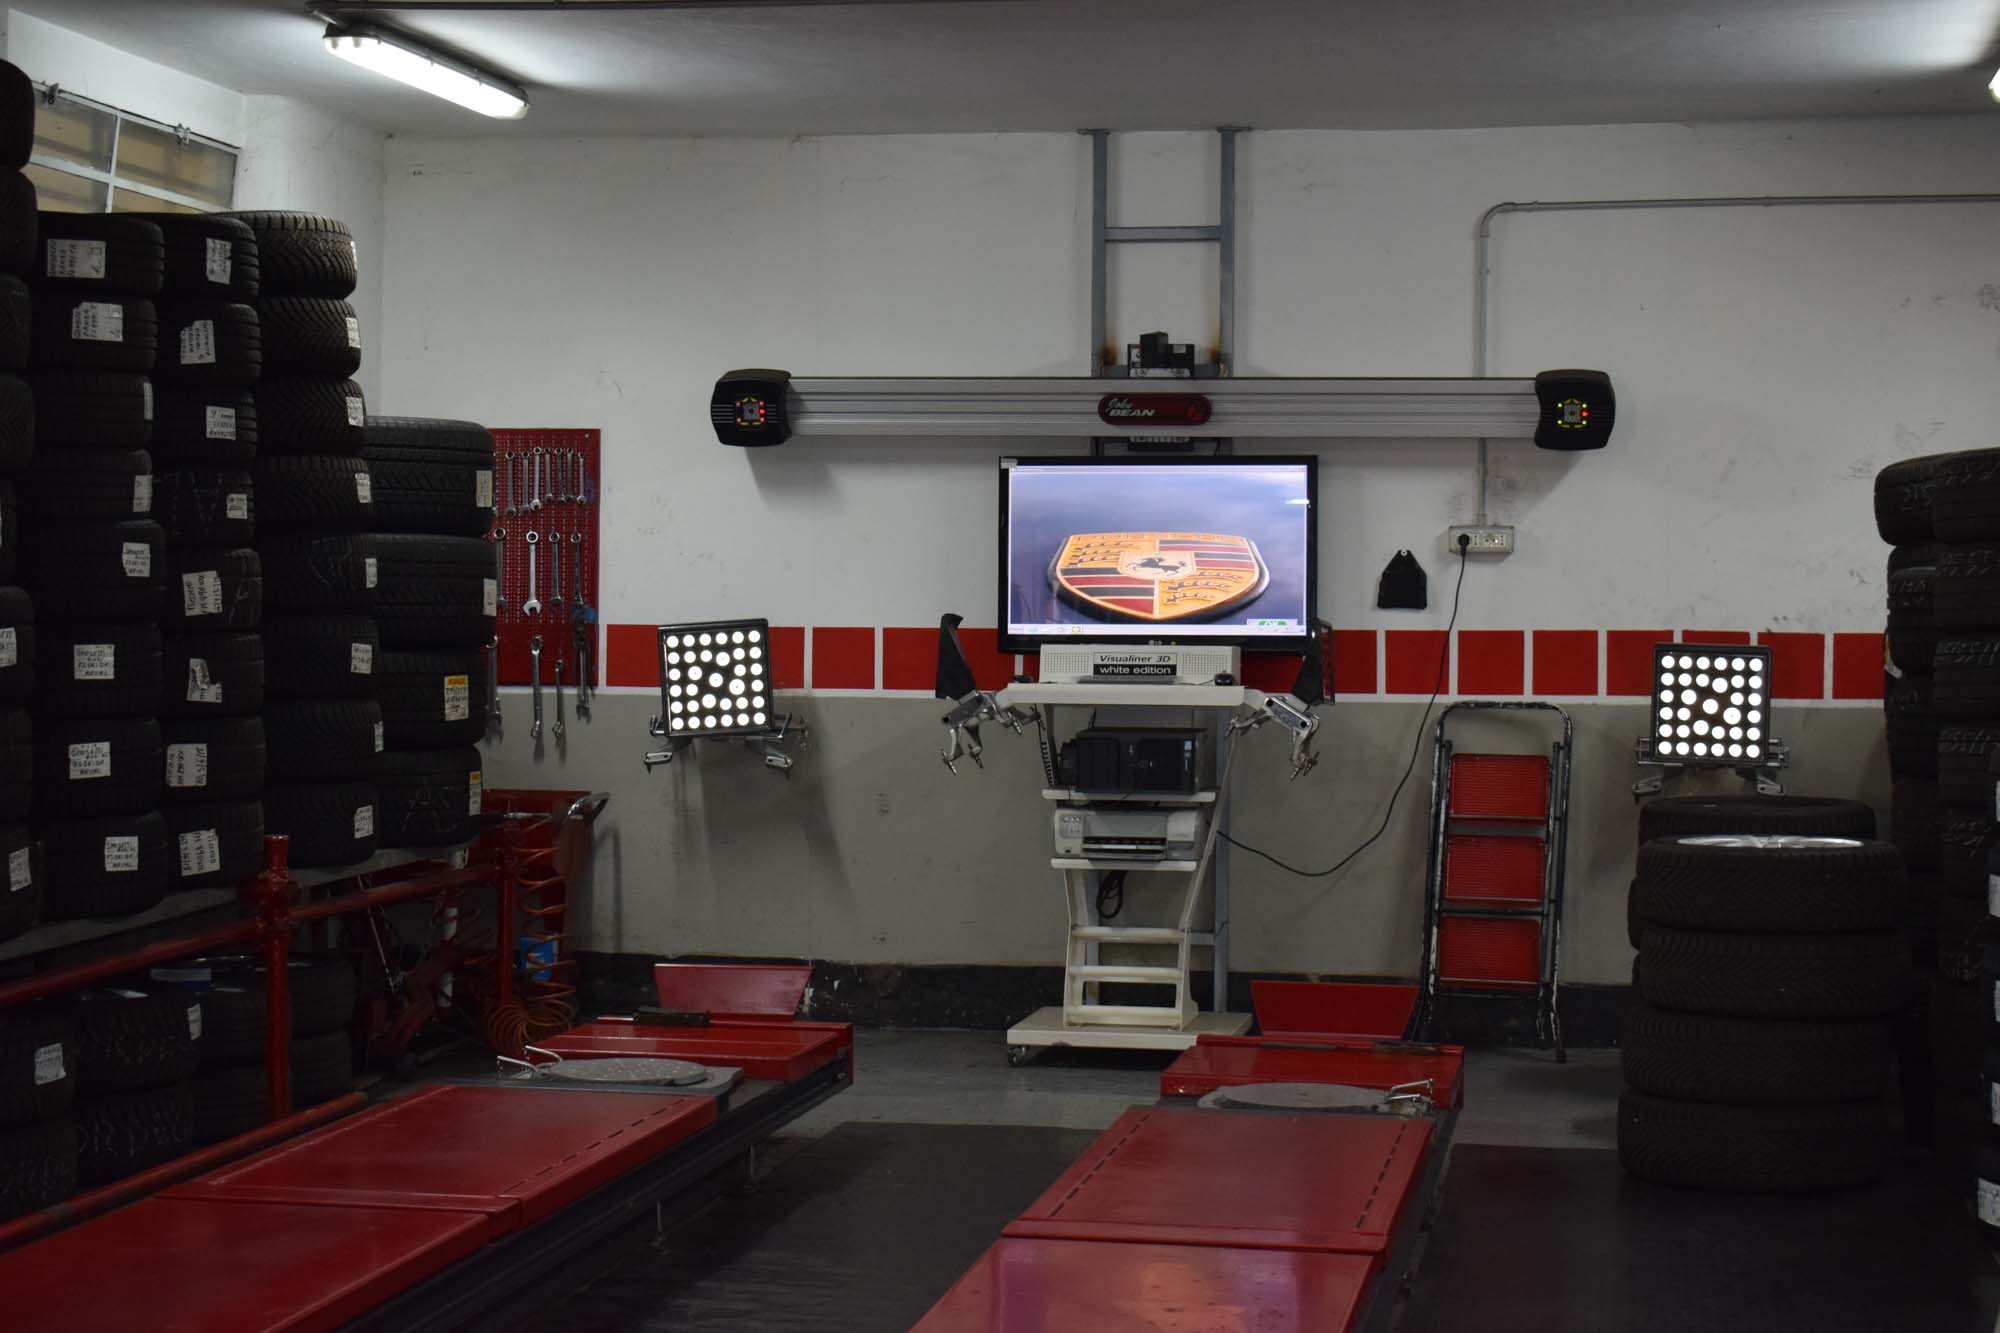 giesse-gomme-officina-pneumatici-9